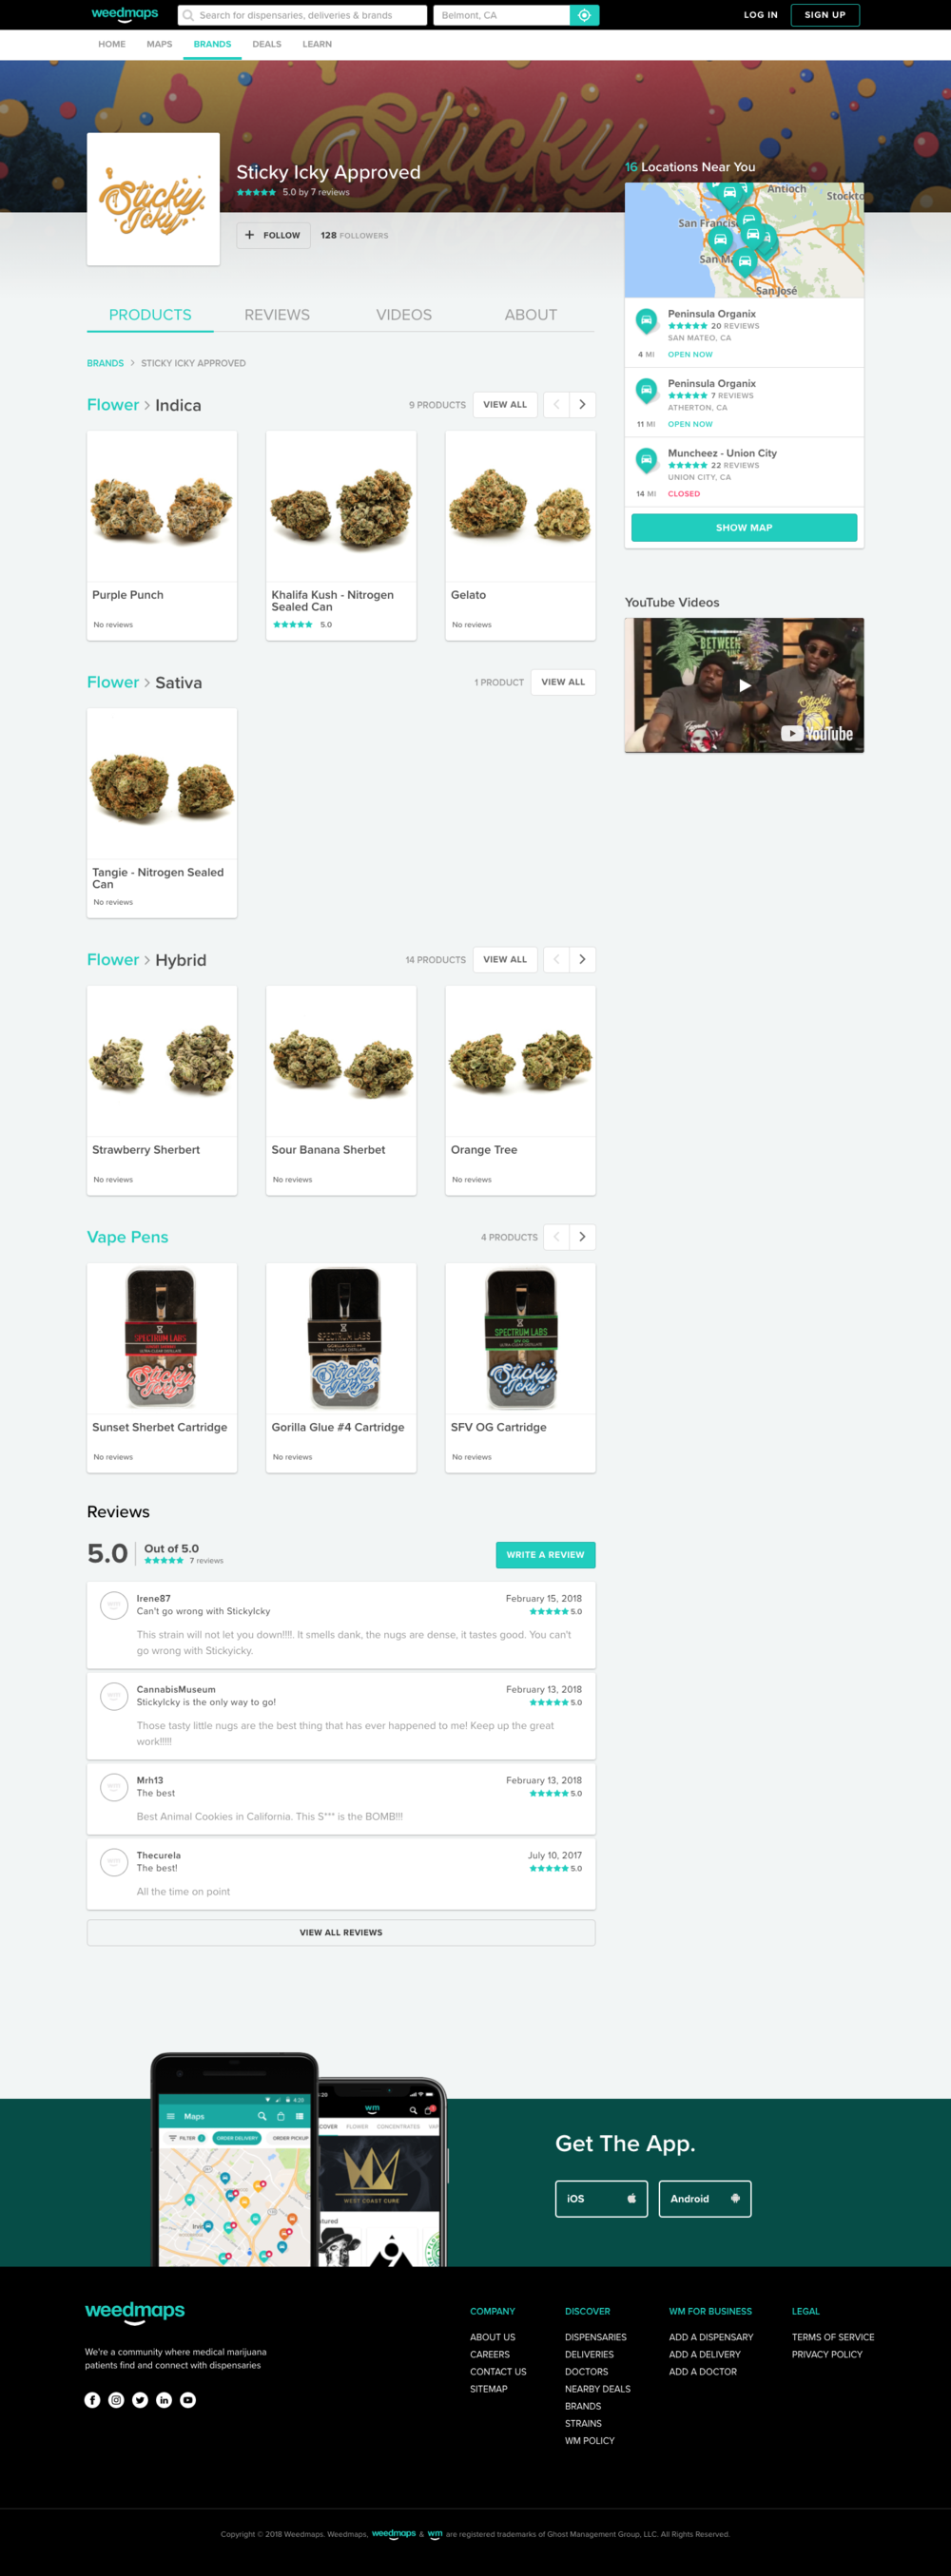 screencapture-weedmaps-brands-sticky-icky-1519860606699.png